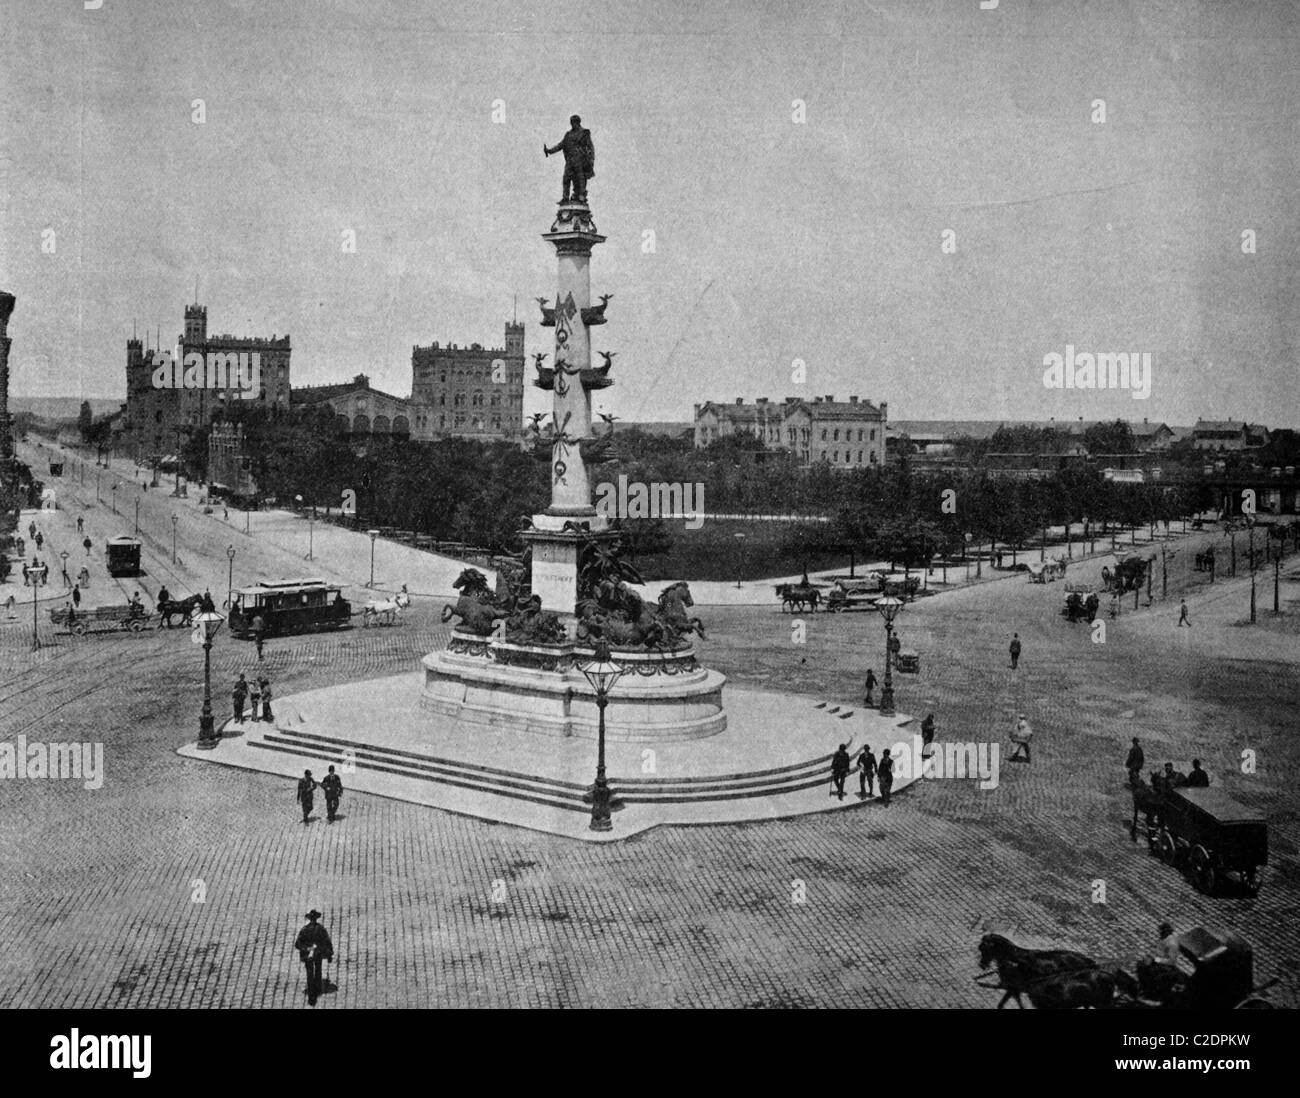 One of the first autotype prints, Praterstern roundabout, historic photograph, 1884, Vienna, Austria, Europe - Stock Image